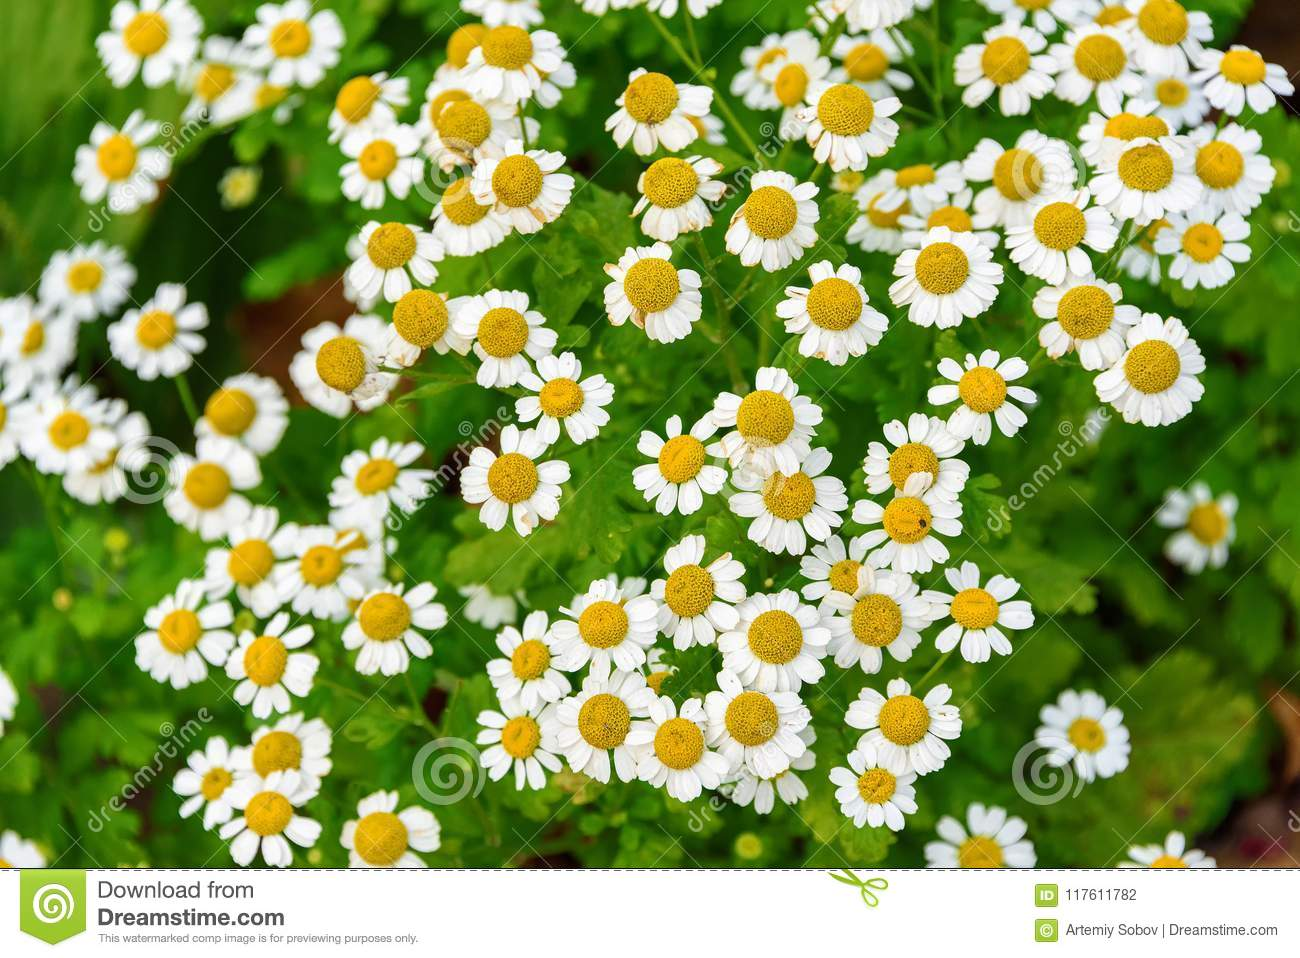 A flower bed with daisies background of white flowers close up download a flower bed with daisies background of white flowers close up stock mightylinksfo